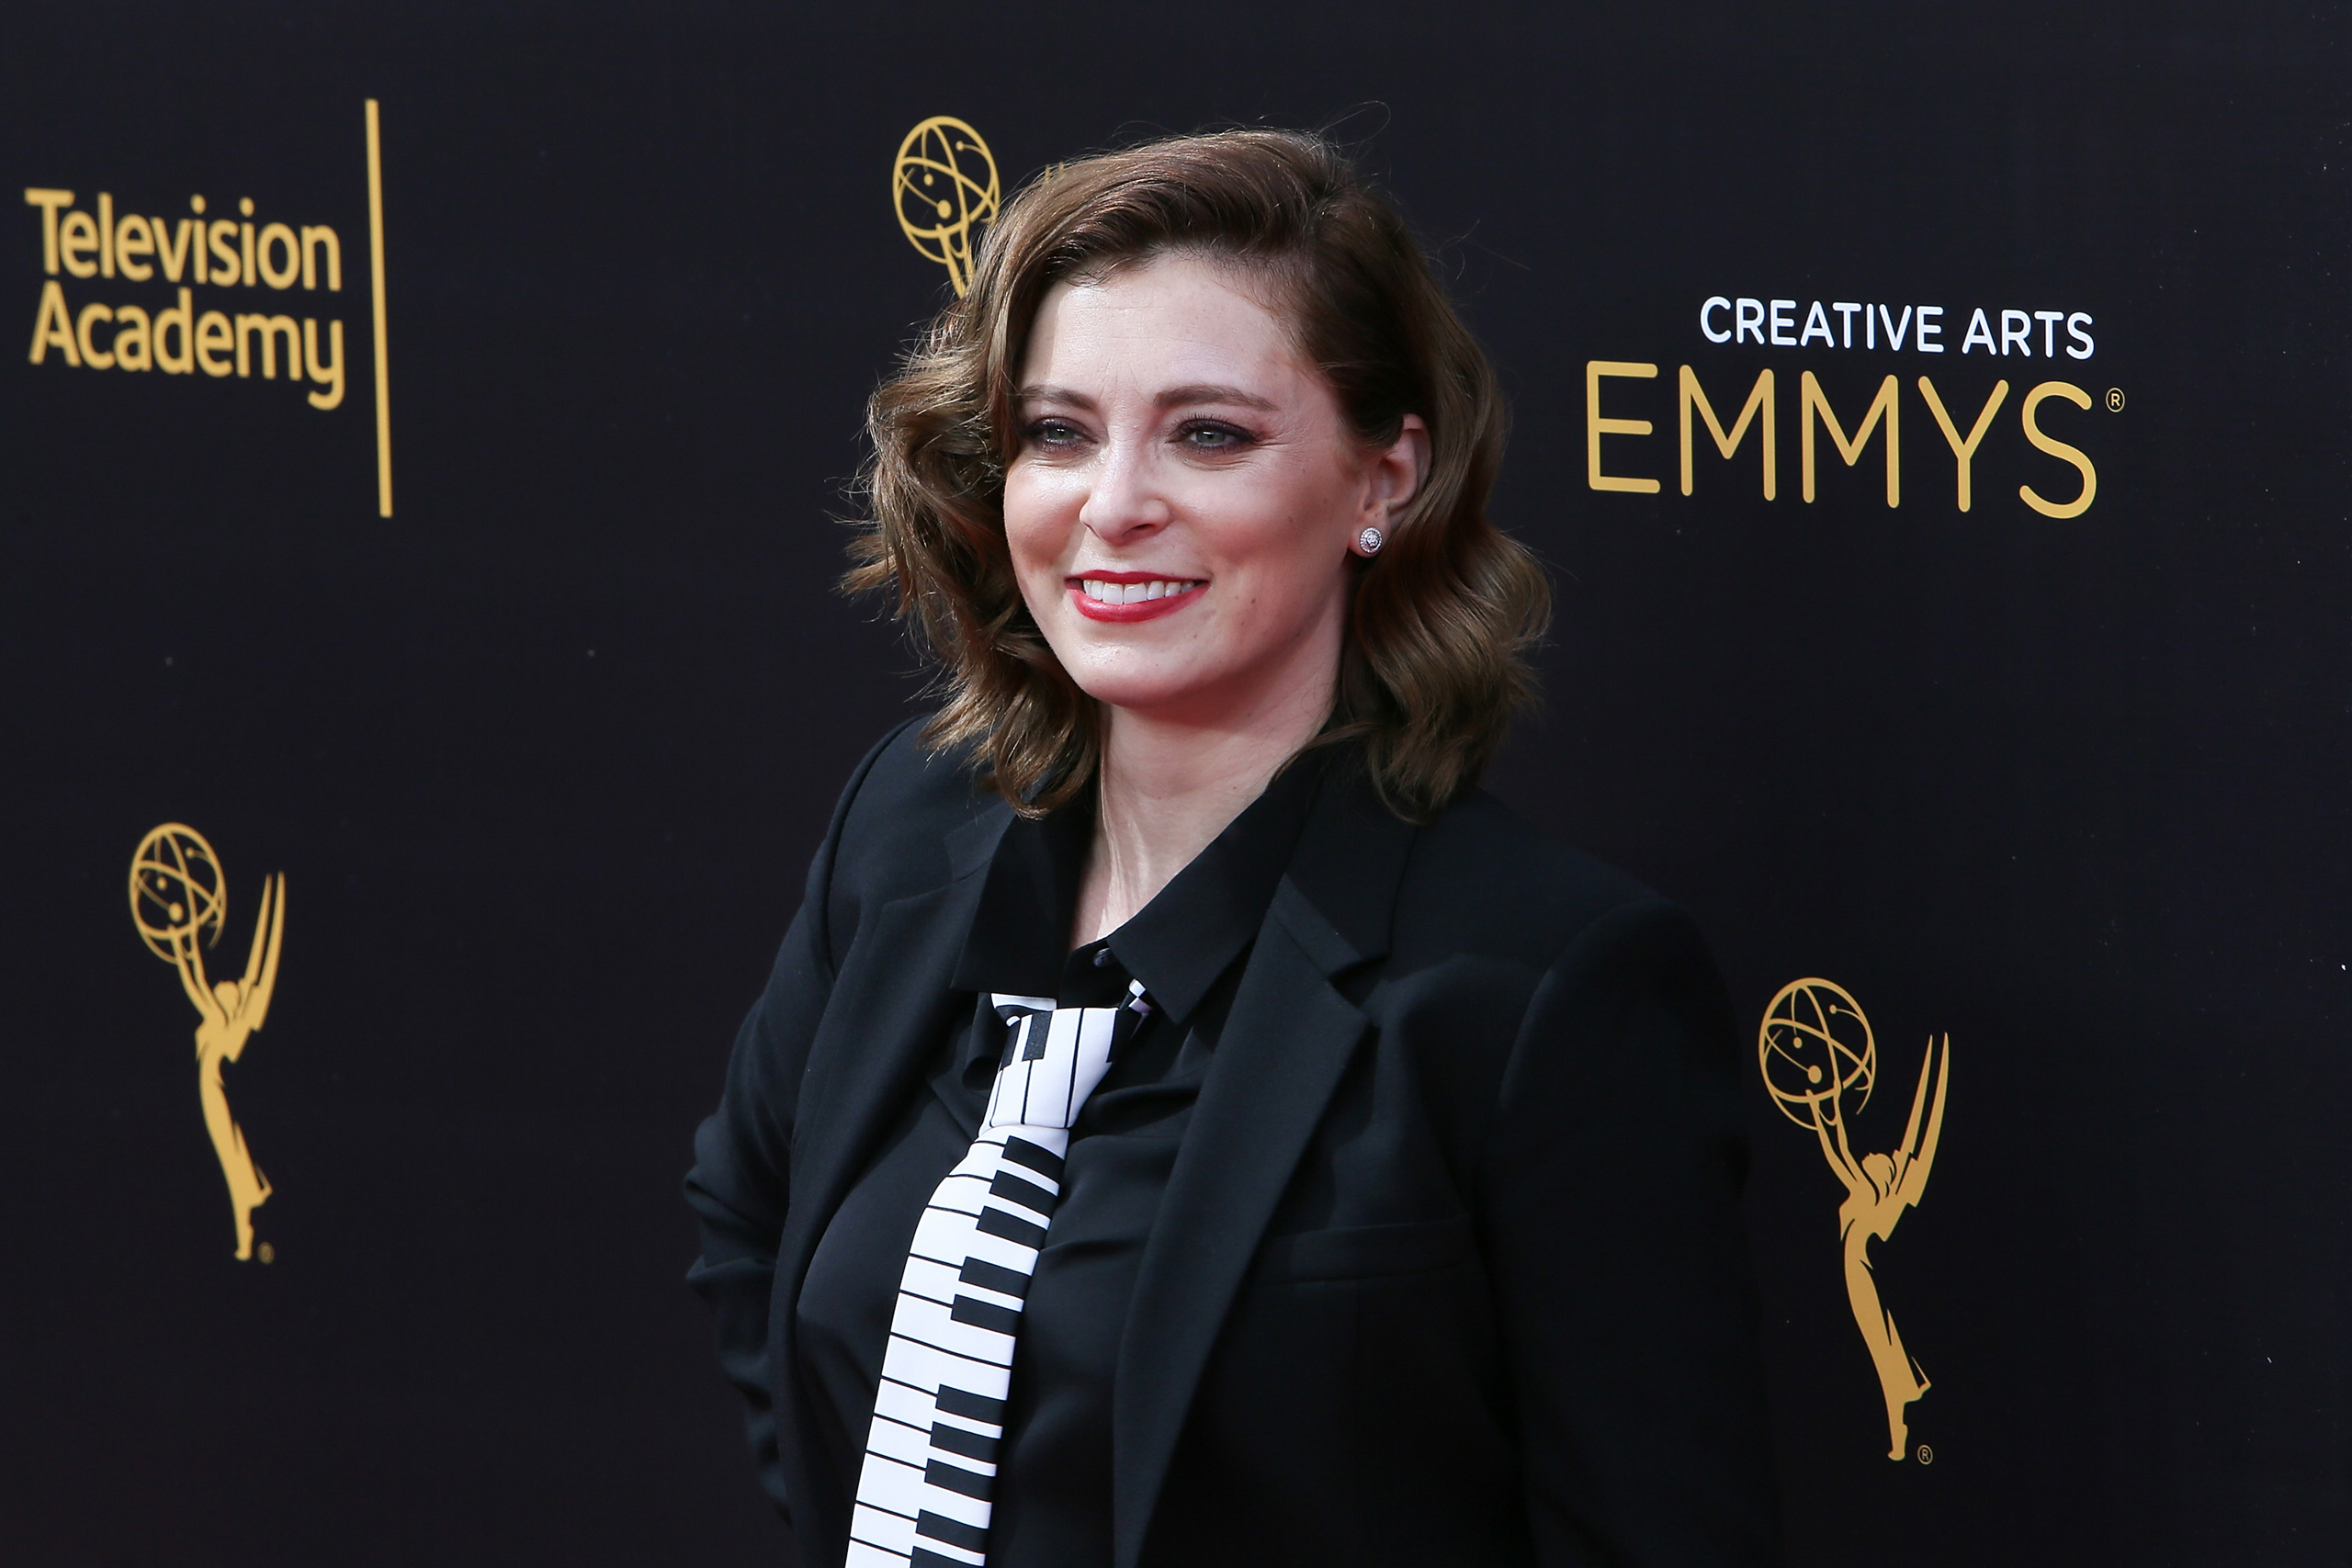 Rachel Bloom attends the 2016 Creative Arts Emmy Awards Day 1 at the Microsoft Theater in Los Angeles on Sept. 10, 2016.